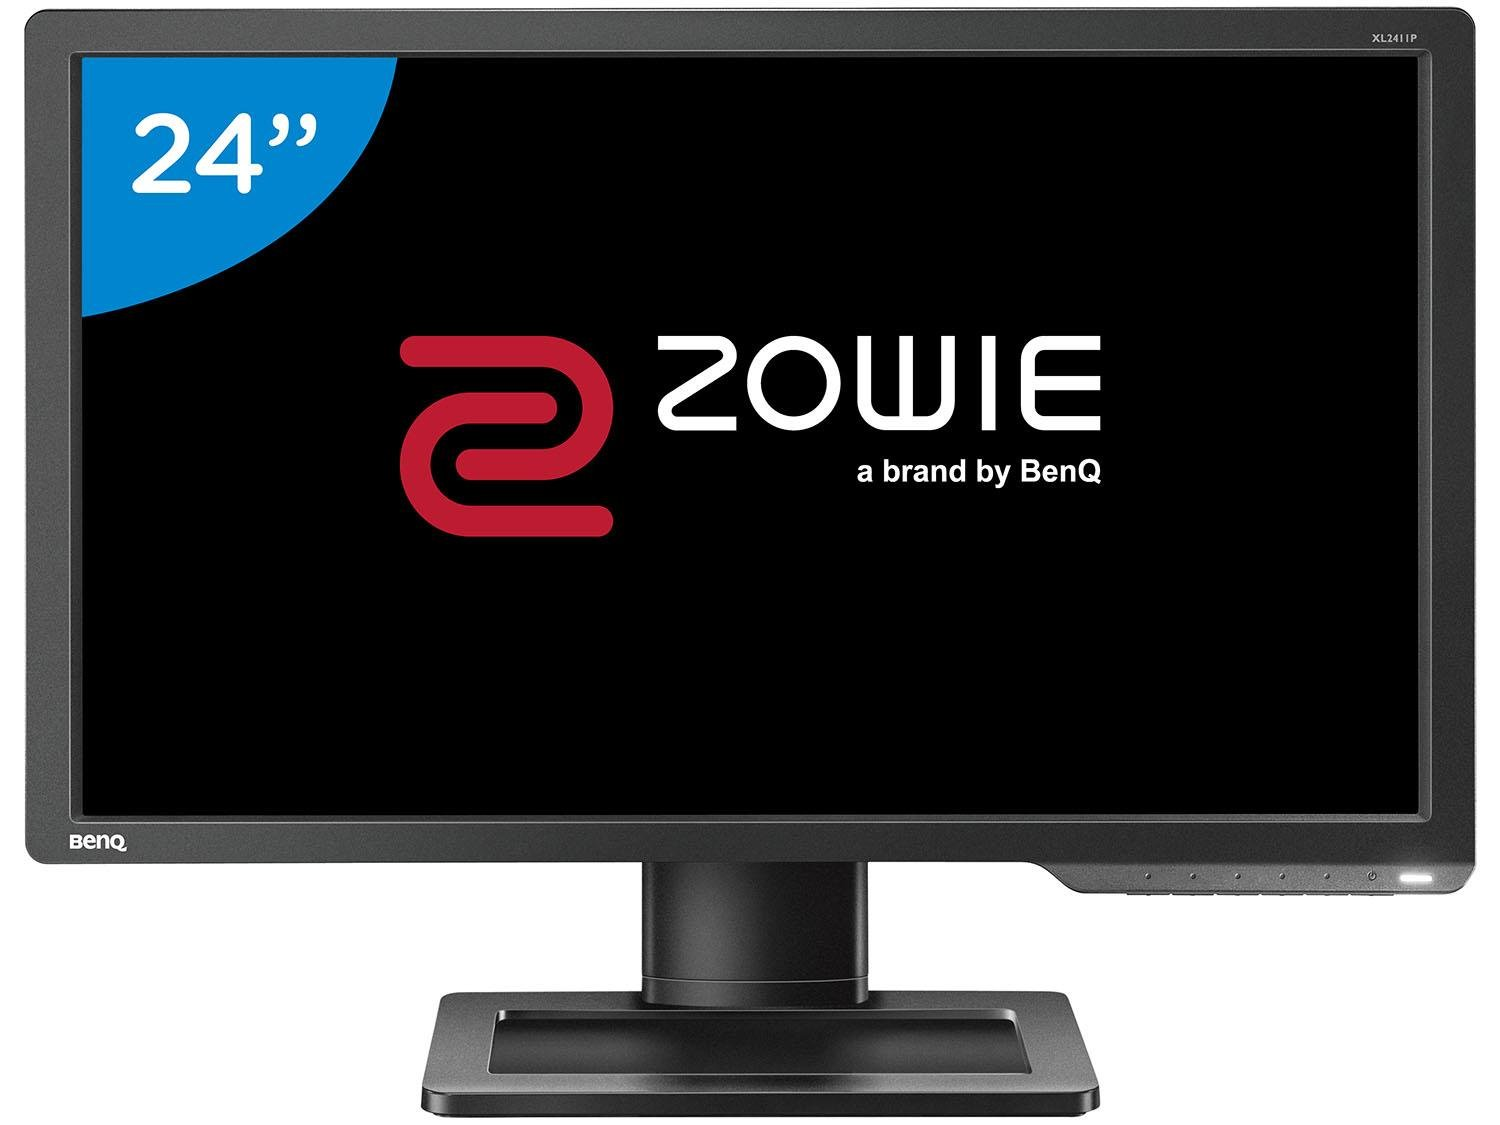 Foto 1 - Monitor Gamer Full HD BenQ Zowie LED Widescreen - 24 Série XL XL2411P